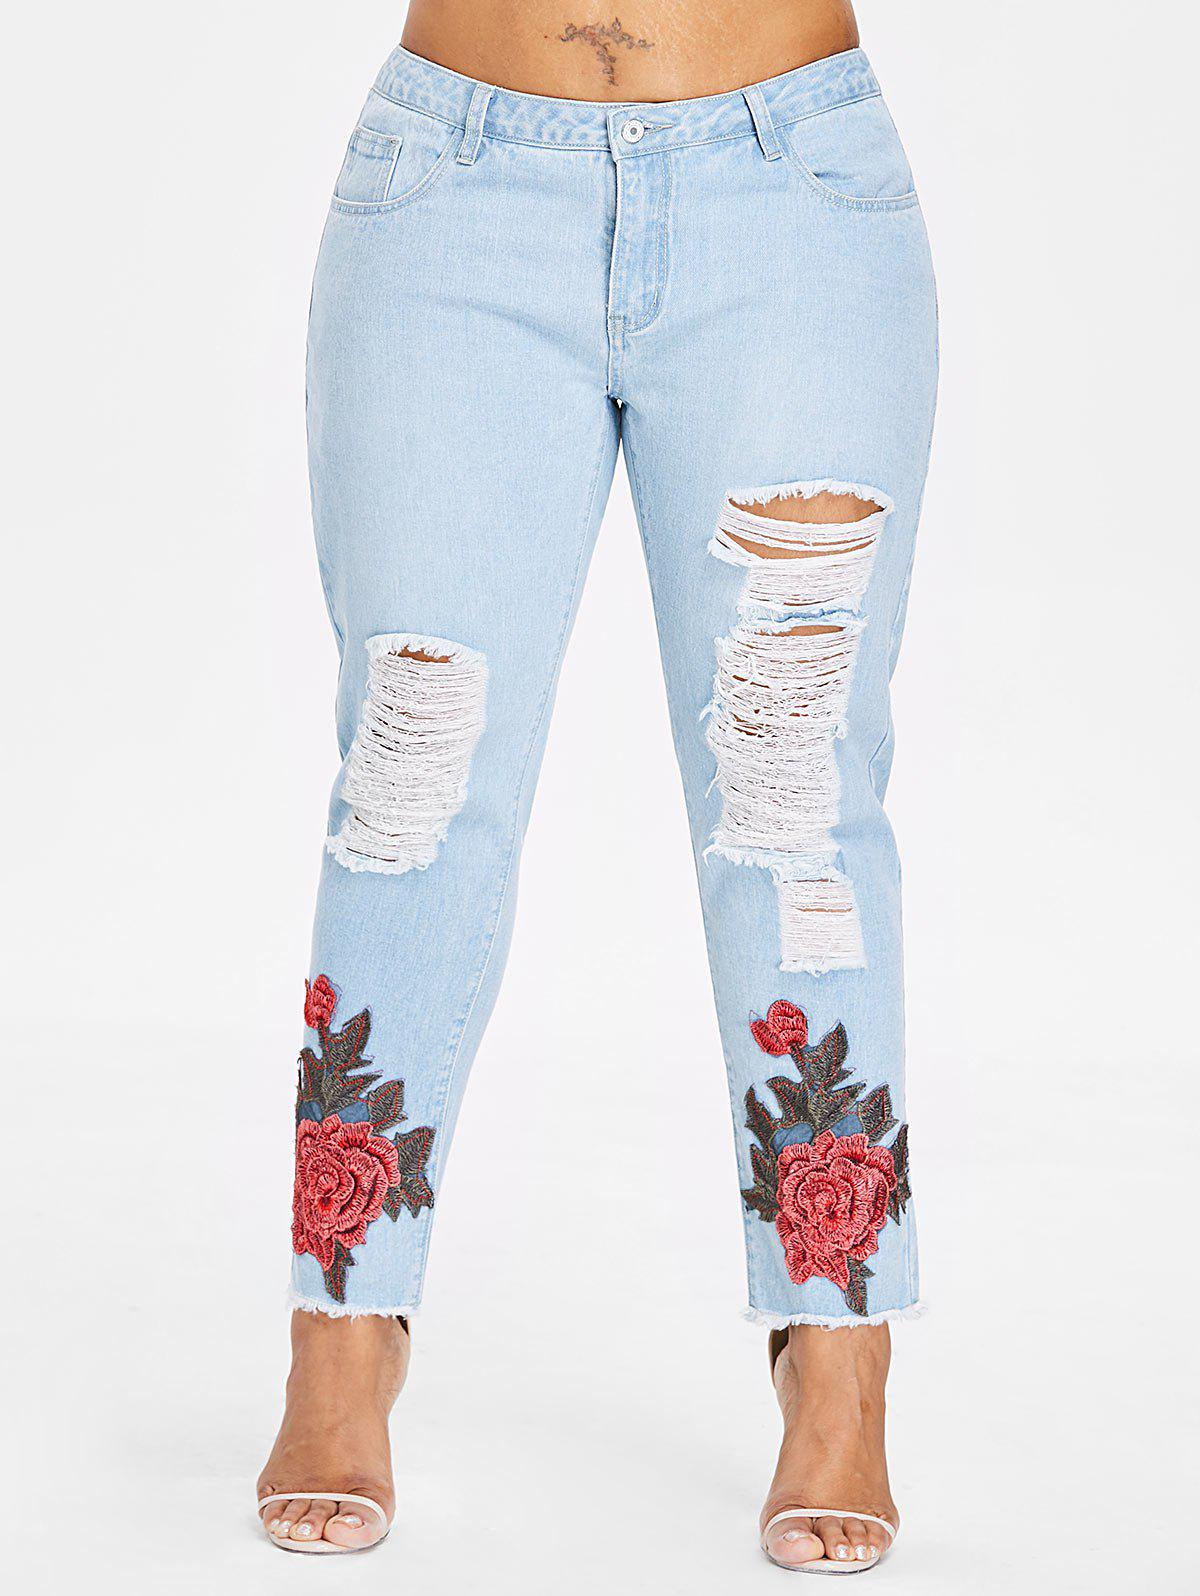 Plus Size Raw Hem Ripped Jeans - JEANS BLUE 4X